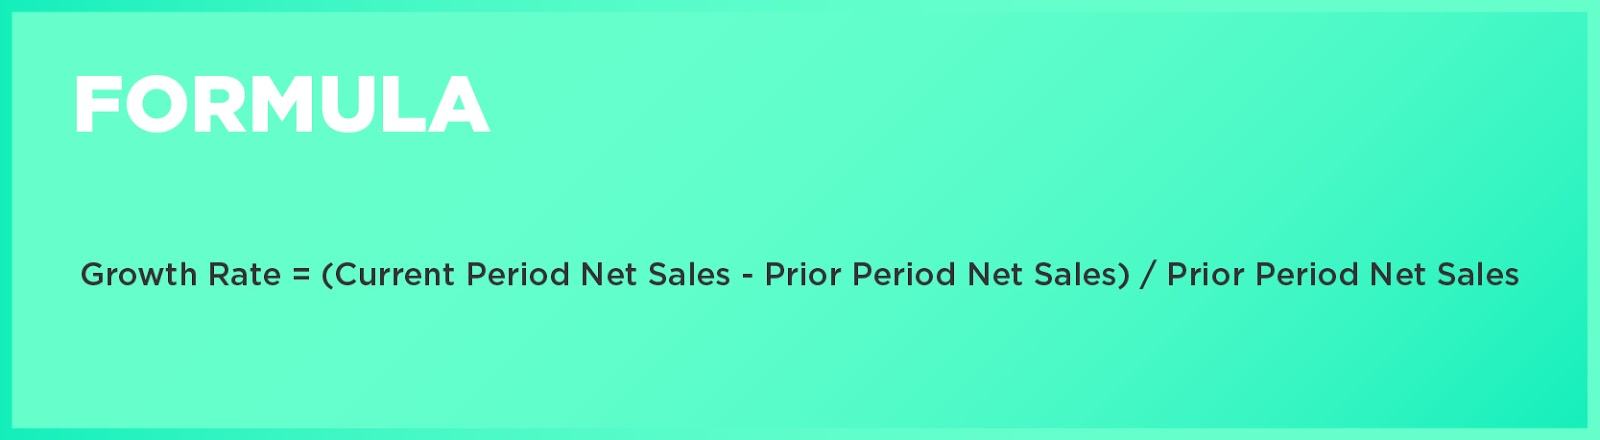 Formula: Growth Rate = (Current Period Net Sales - Prior Period Net Sales) / Prior Period Net Sales